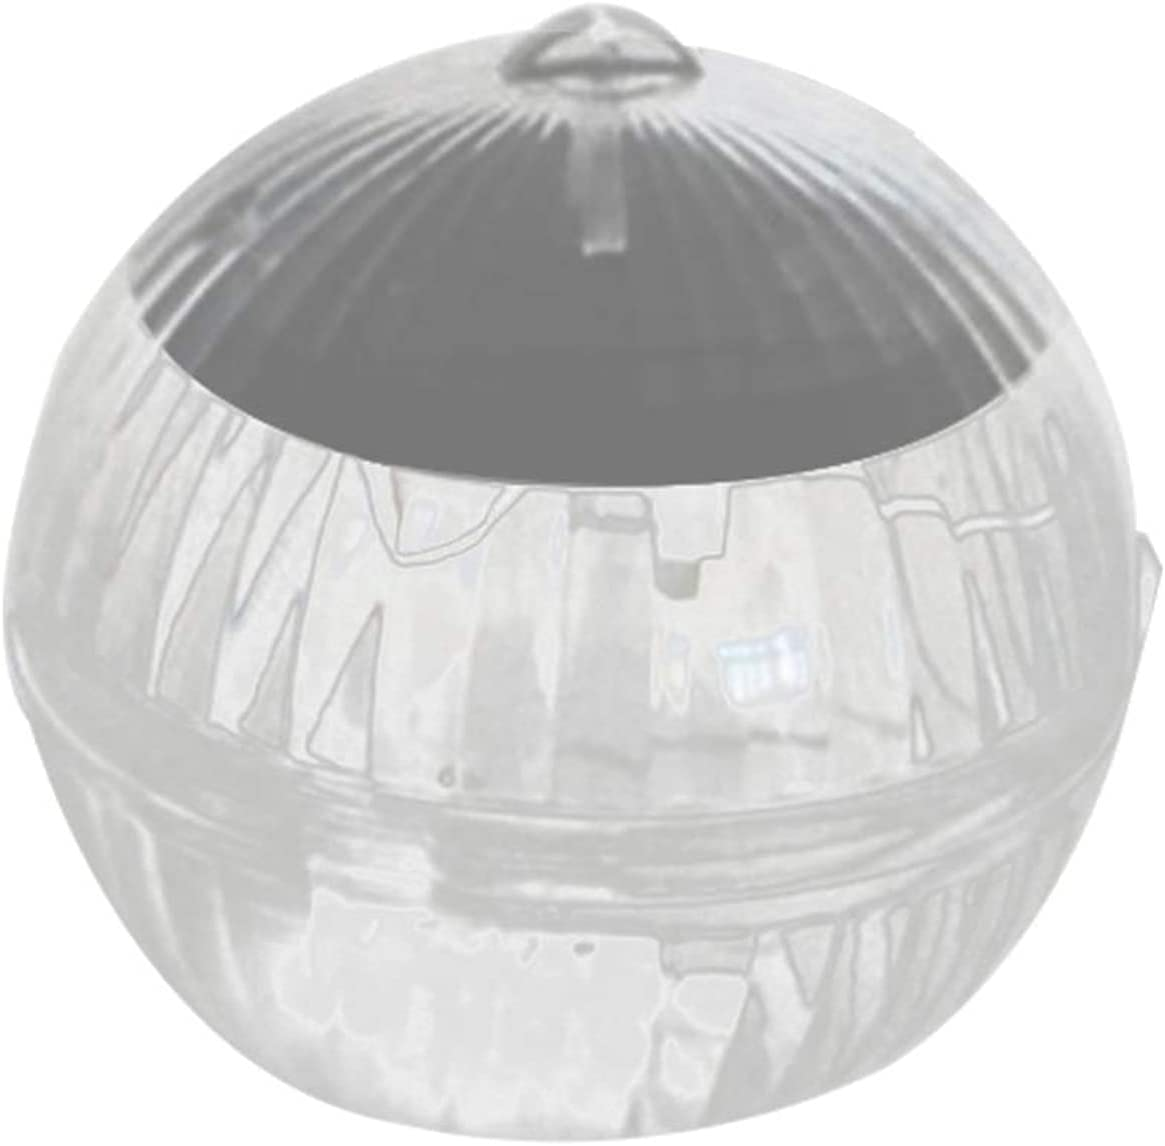 Waterproof Solar Floating High quality new Pool Lights Water LED U Light Sales of SALE items from new works